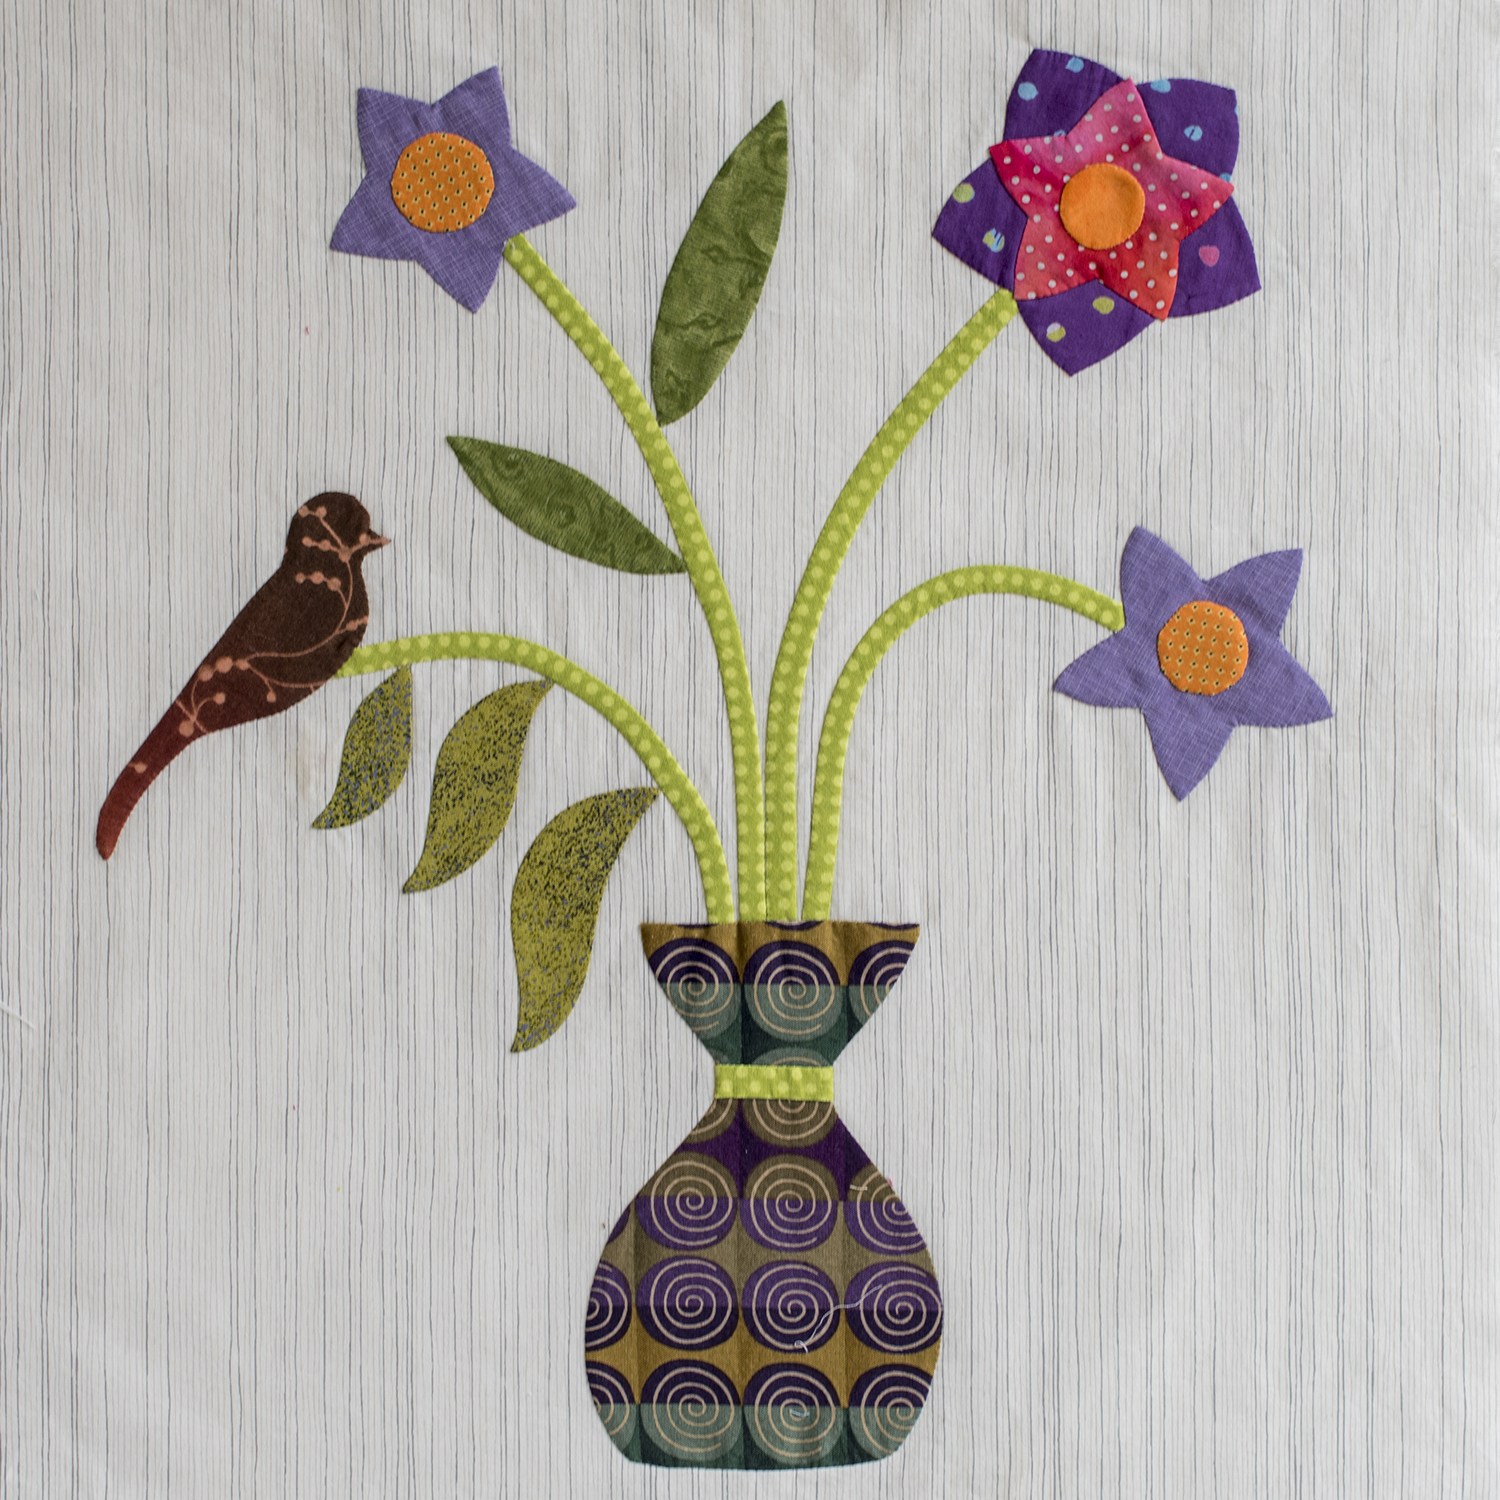 applique flowers in a vase.jpg